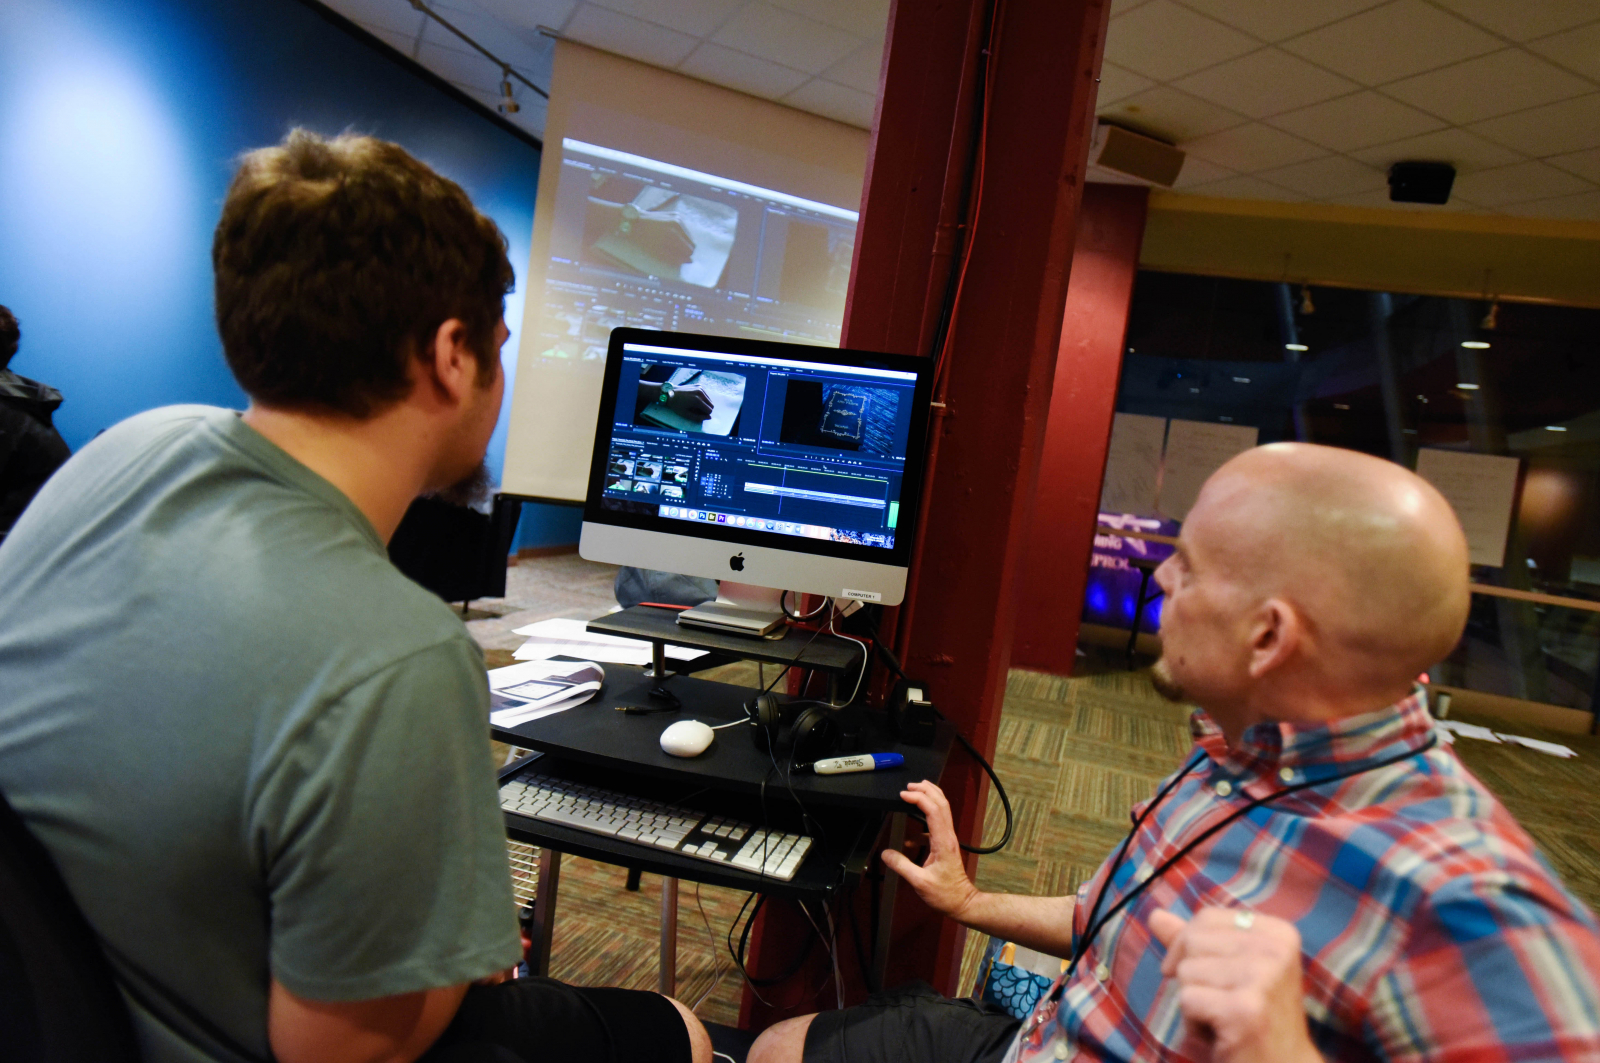 Filmmaking Academy students shoot and edit video at Proctors during their two-week summer education program Tuesday, July 25, 2017.